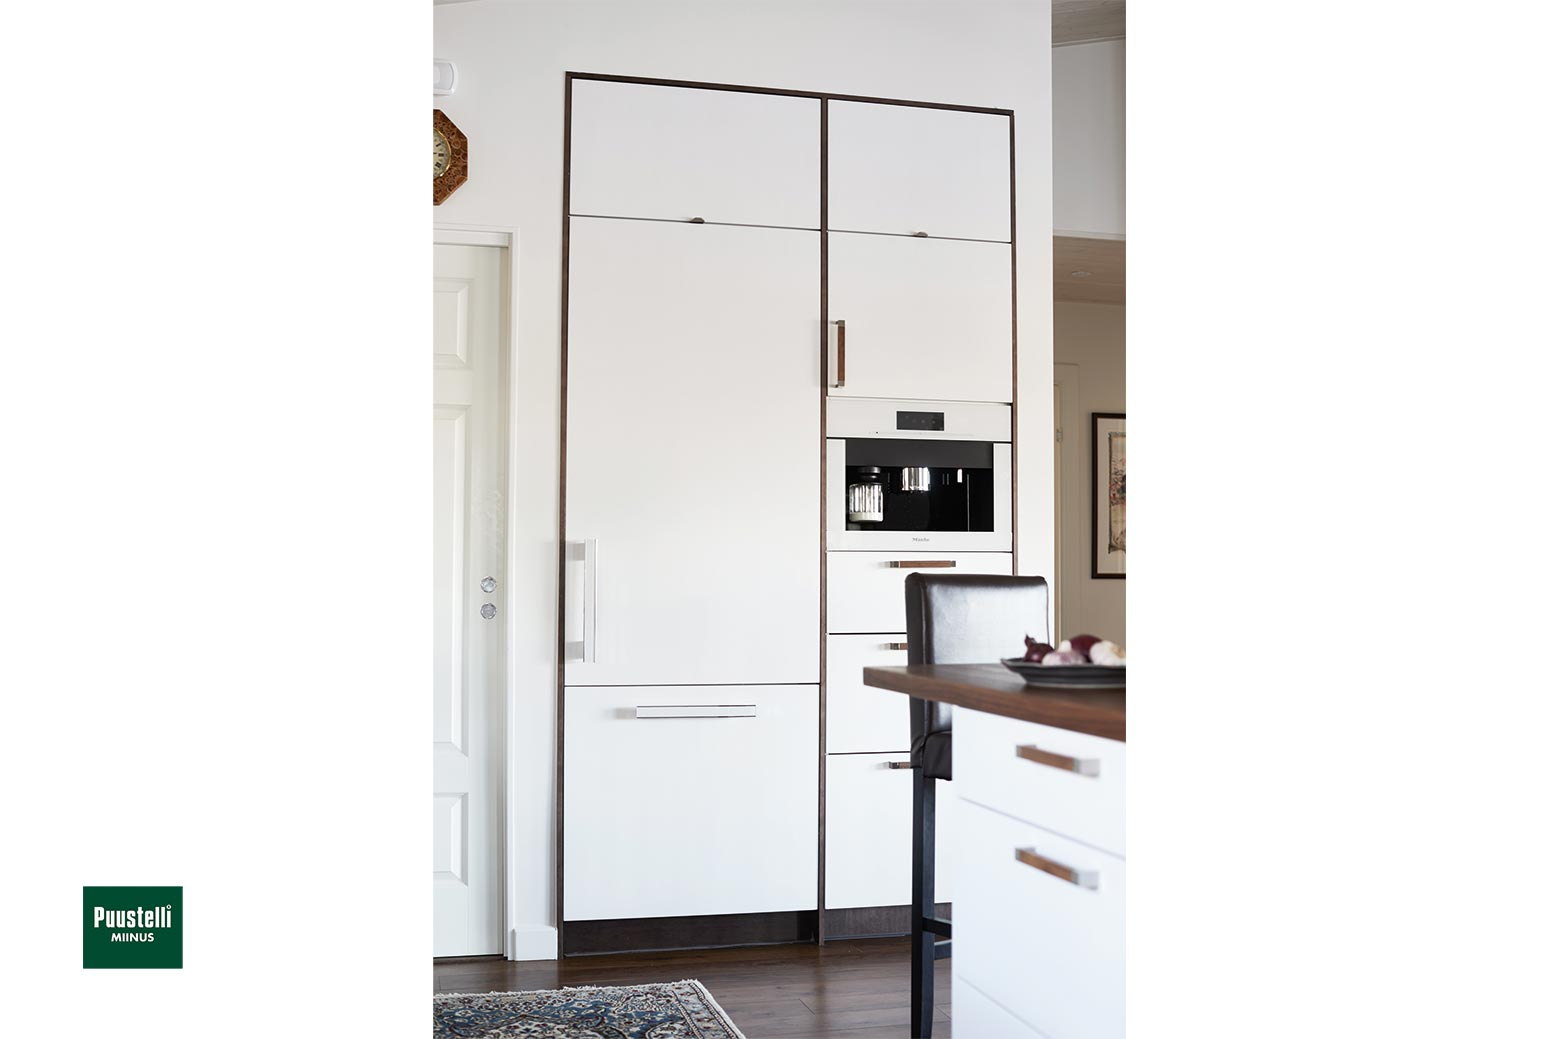 Puustelli Miinus ecological kitchen in white and lacquered dark brown birch veneer tall appliance units